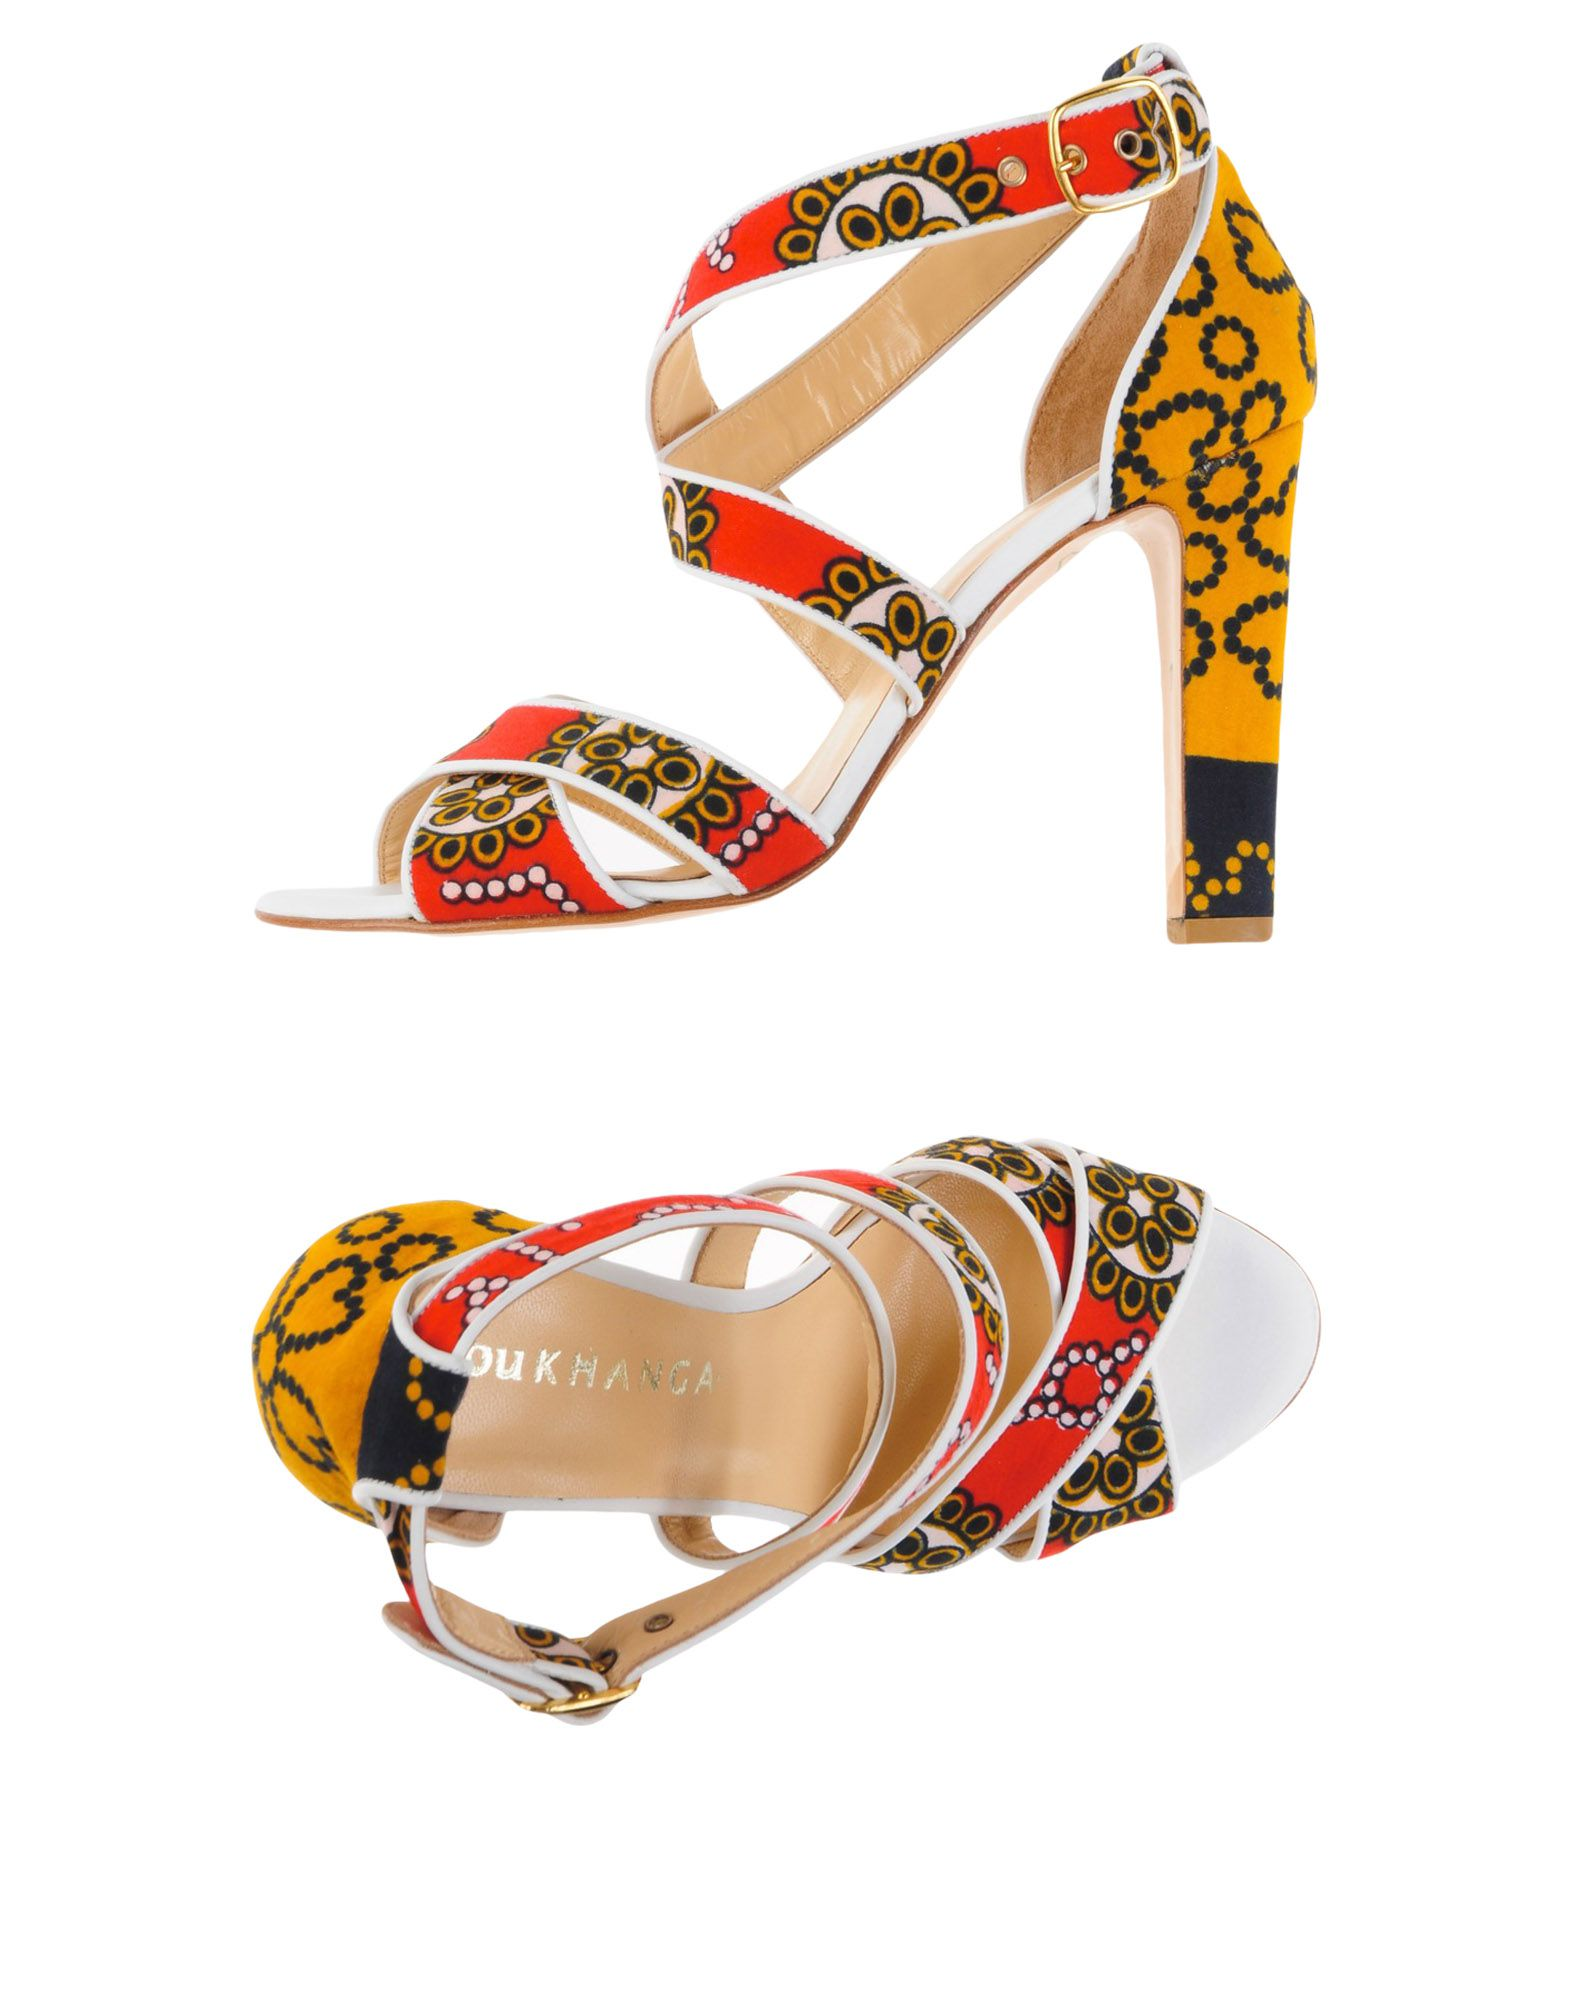 YOU KHANGA Sandals in Red